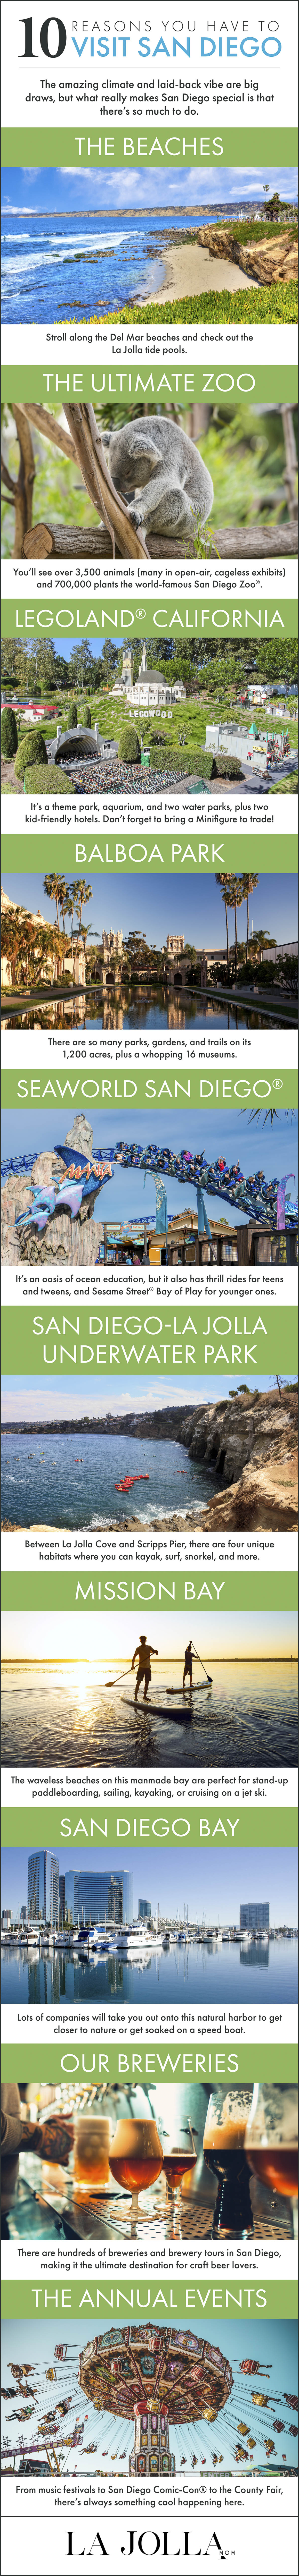 Find the best things to do in San Diego from museums to theme parks